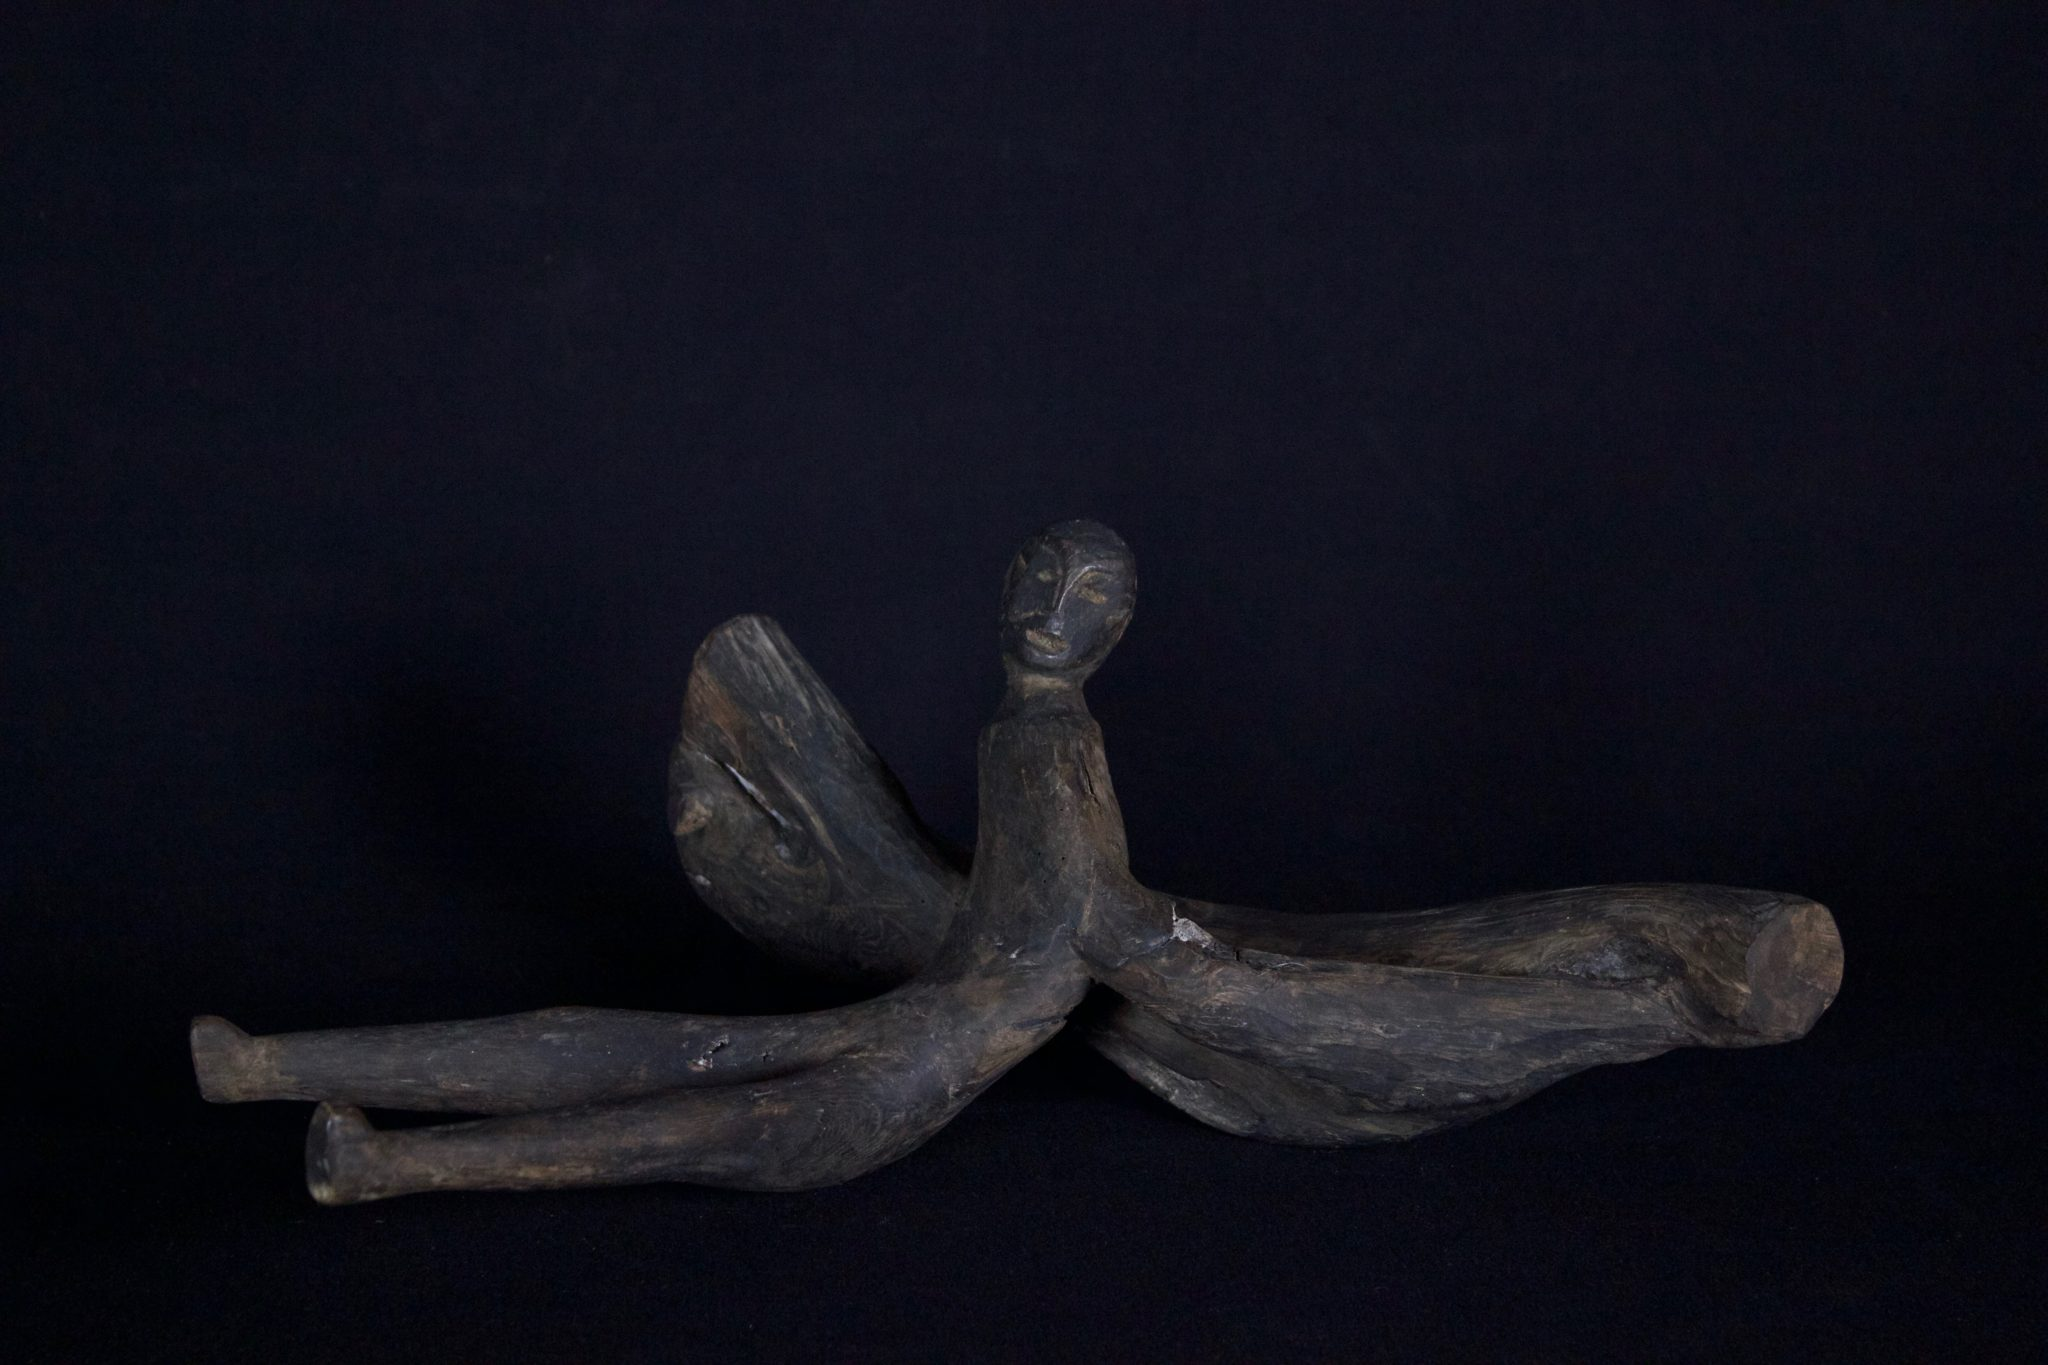 """Shaman Healing Fetish, Kalimantan, Borneo, Indonesia, Dayak tribe, Early 20th c, Wood, pigmented with soot, patinated with age and use. For healing rituals. 6 ½"""" x 13"""" x 10"""", $250."""